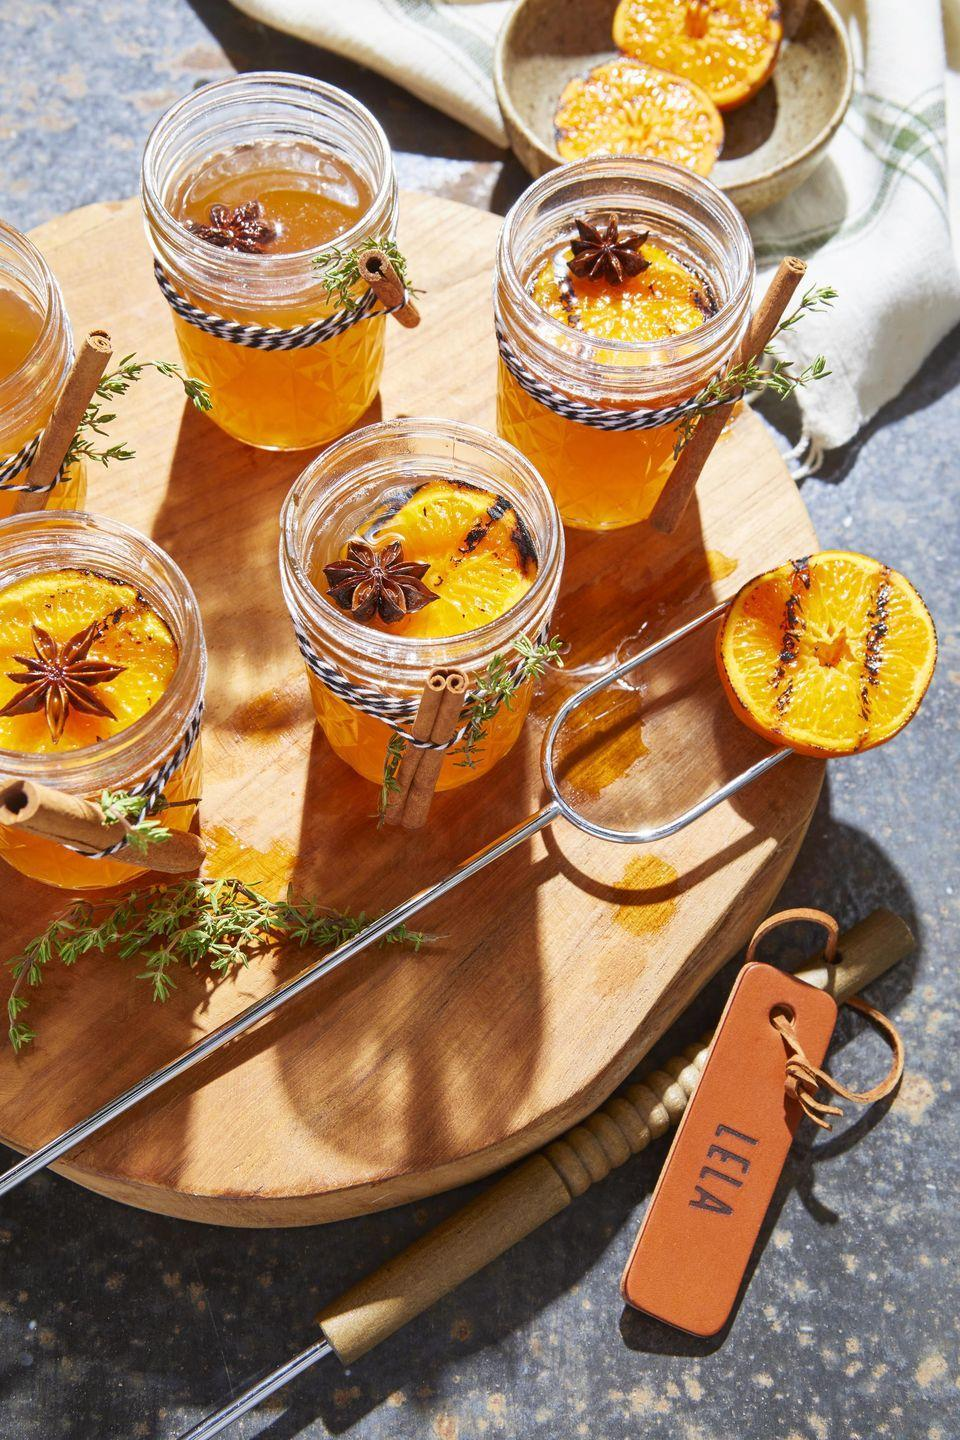 """<p>Honey is a staple part of any hot toddy. In this elevated version, fall spices add lots of depth.</p><p><strong><a href=""""https://www.countryliving.com/food-drinks/a34945104/hot-toddy-with-charred-oranges-recipe/"""" rel=""""nofollow noopener"""" target=""""_blank"""" data-ylk=""""slk:Get the recipe"""" class=""""link rapid-noclick-resp"""">Get the recipe</a>.</strong></p>"""